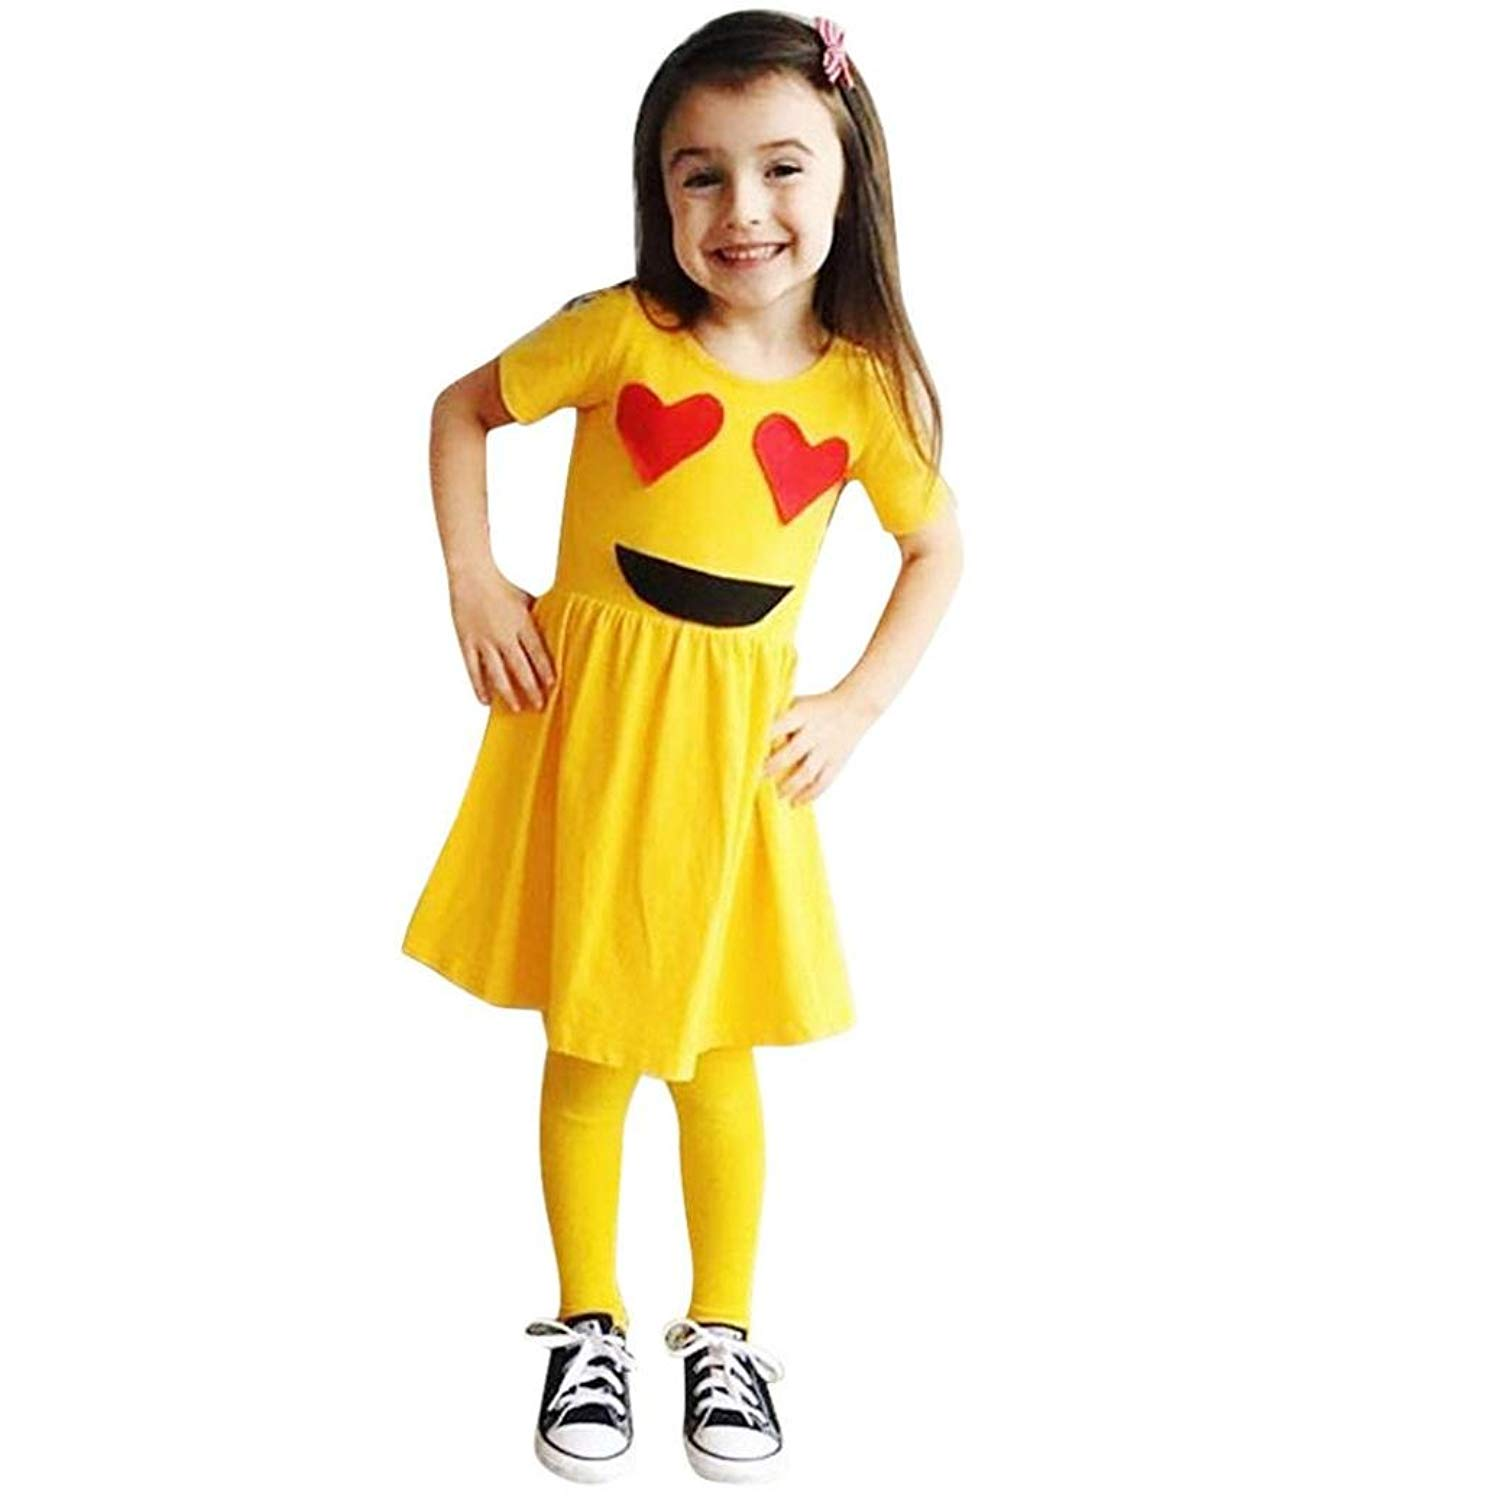 Dainzuy Infant Baby Girls Short Sleeve Expression Smiley Emoji Dresses Outfits